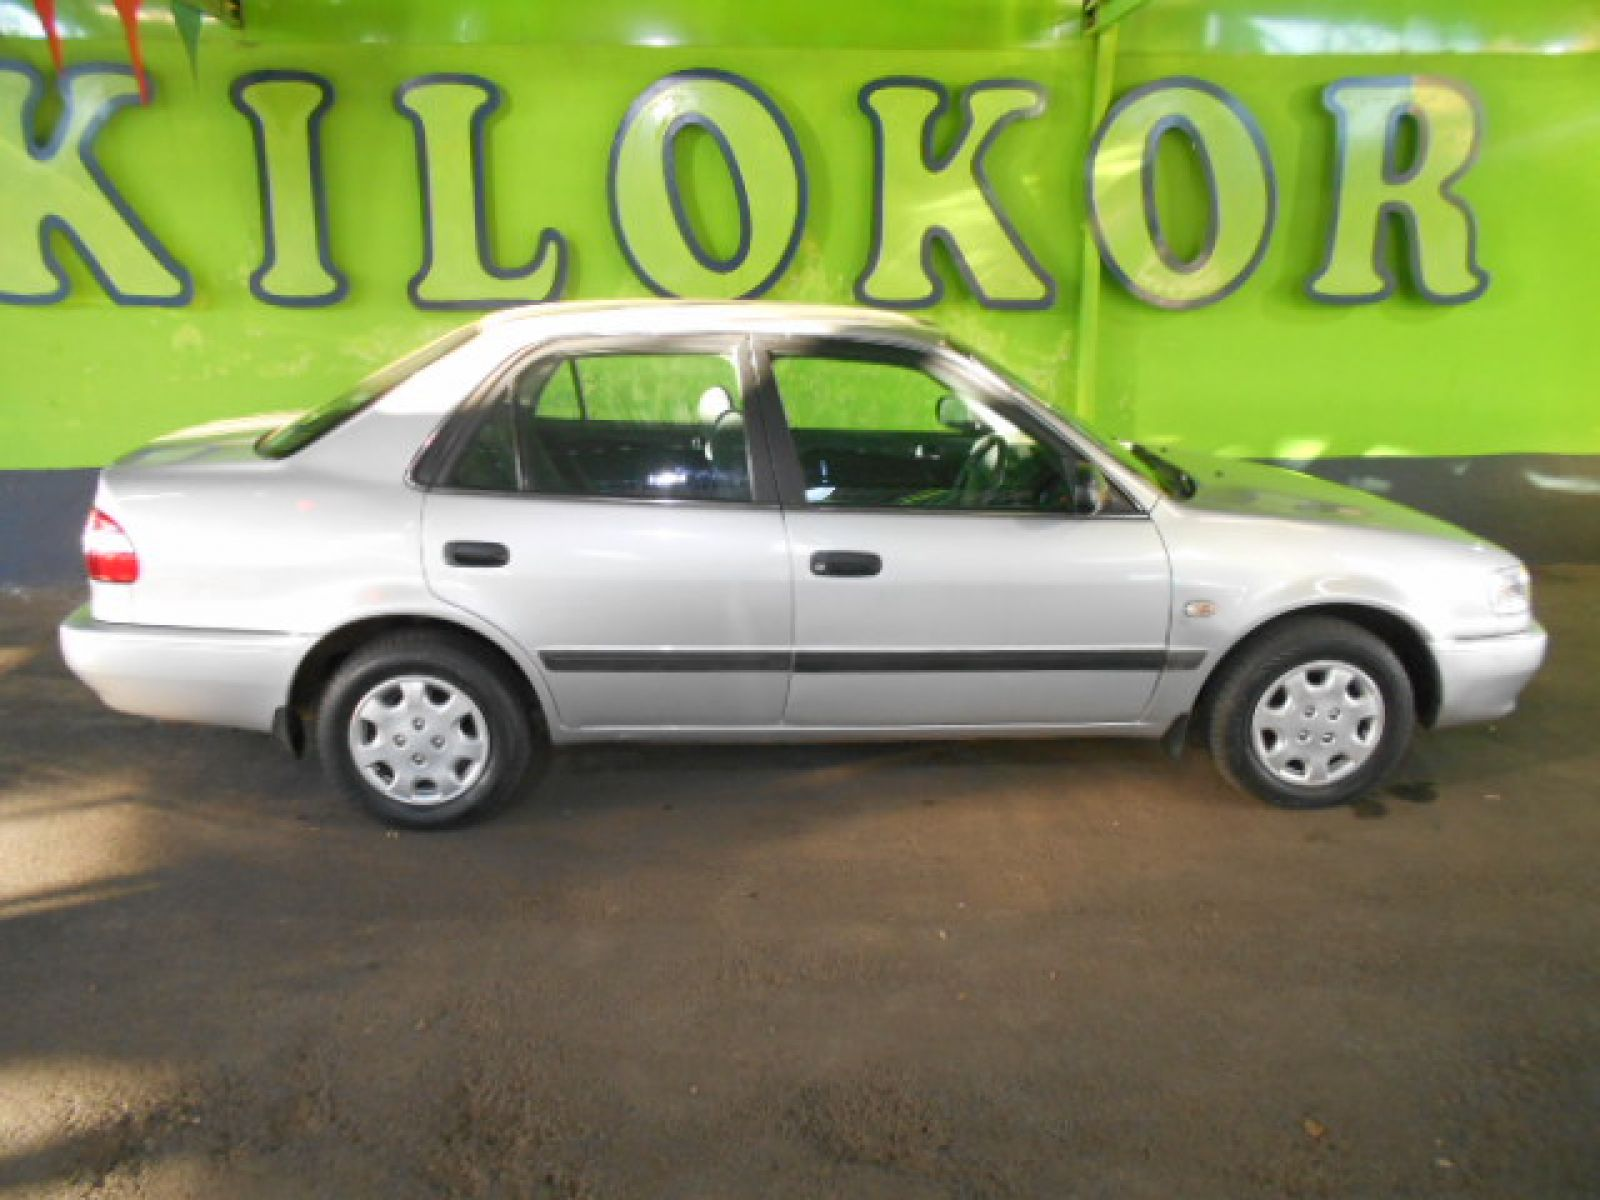 2002 toyota corolla r 59 990 for sale kilokor motors. Black Bedroom Furniture Sets. Home Design Ideas